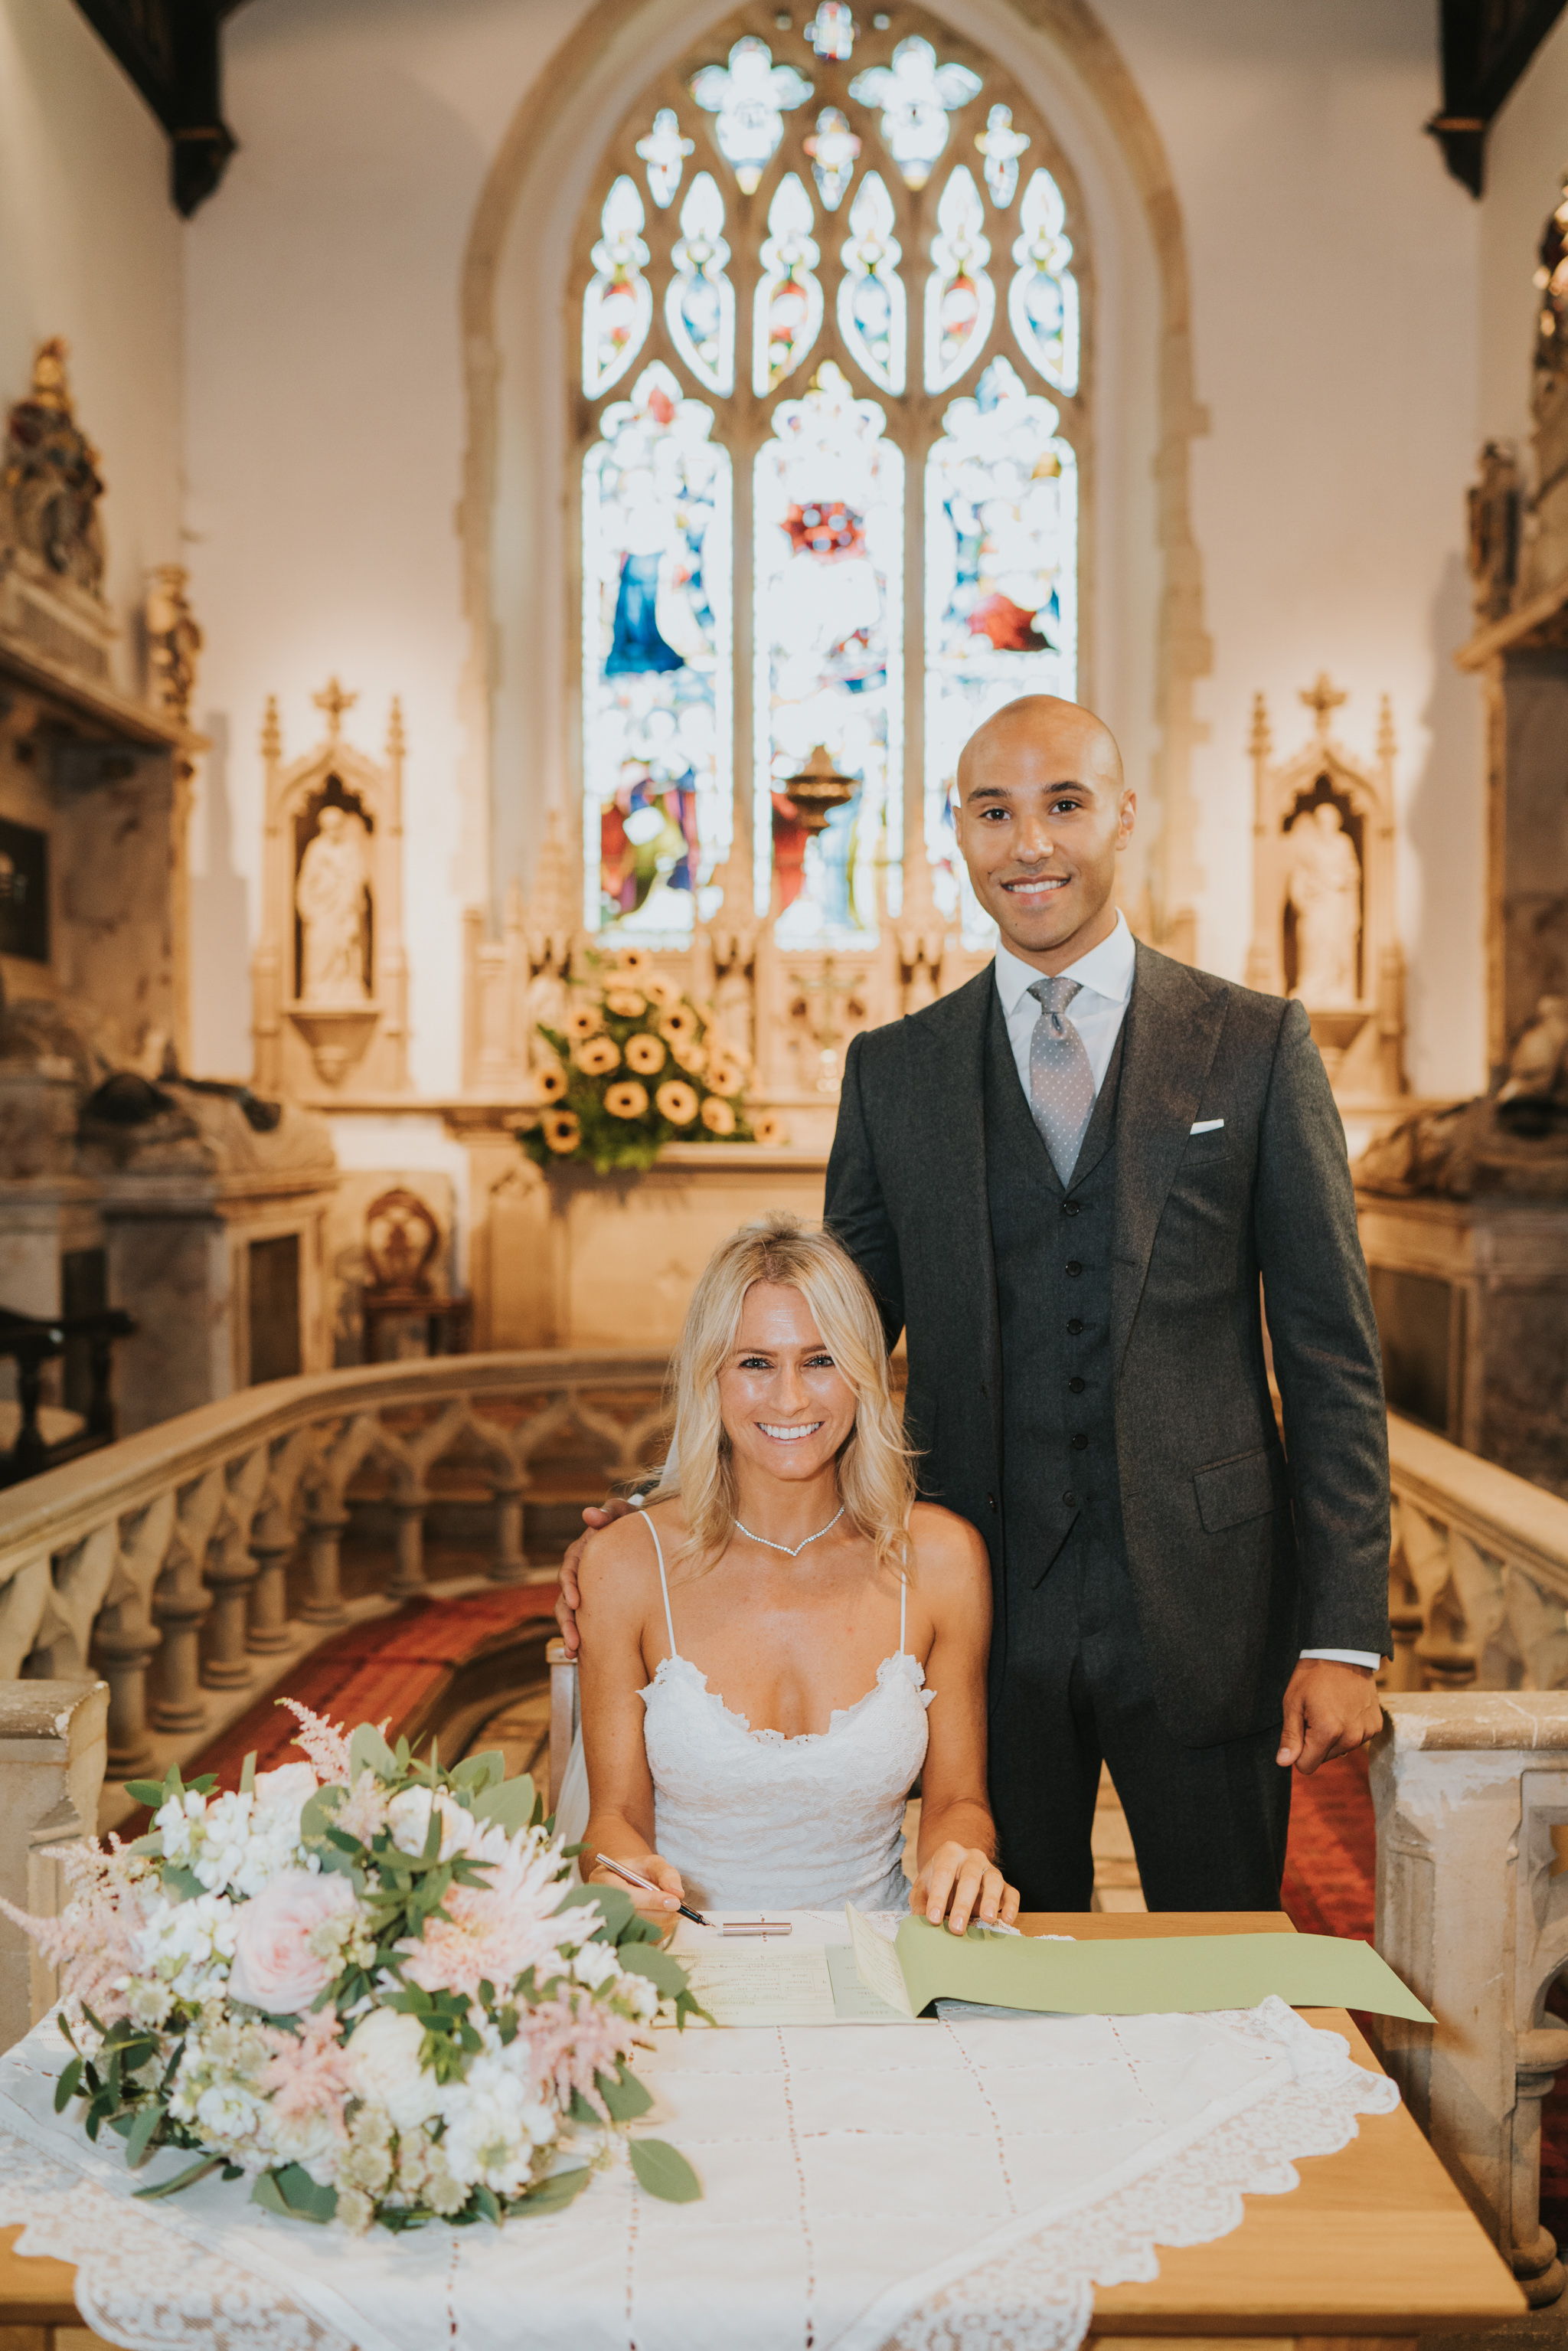 intimate-english-church-wedding-sarah-alex-colchester-essex-grace-elizabeth-colchester-essex-alternative-wedding-lifestyle-photographer-essex-suffolk-norfolk-devon (56 of 92).jpg